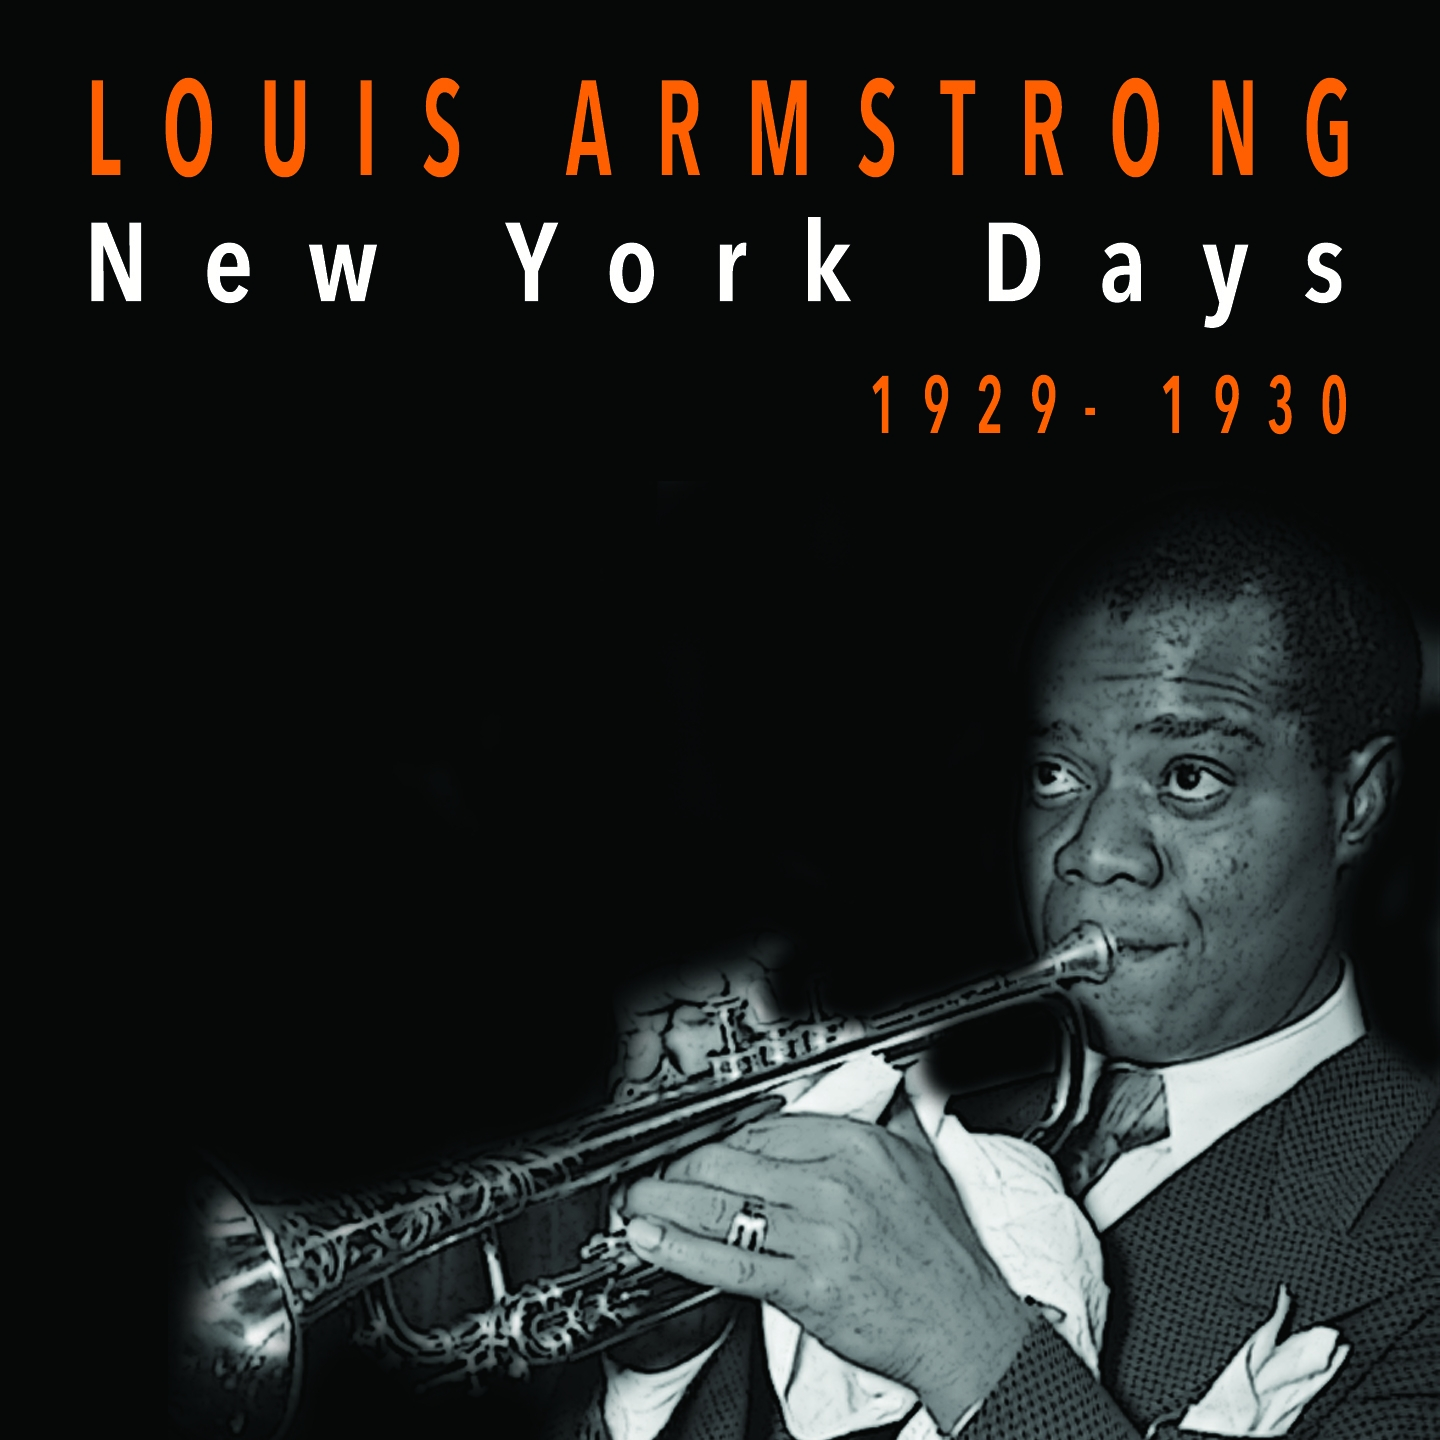 Louis Armstrong - New York Days (1929-1930)